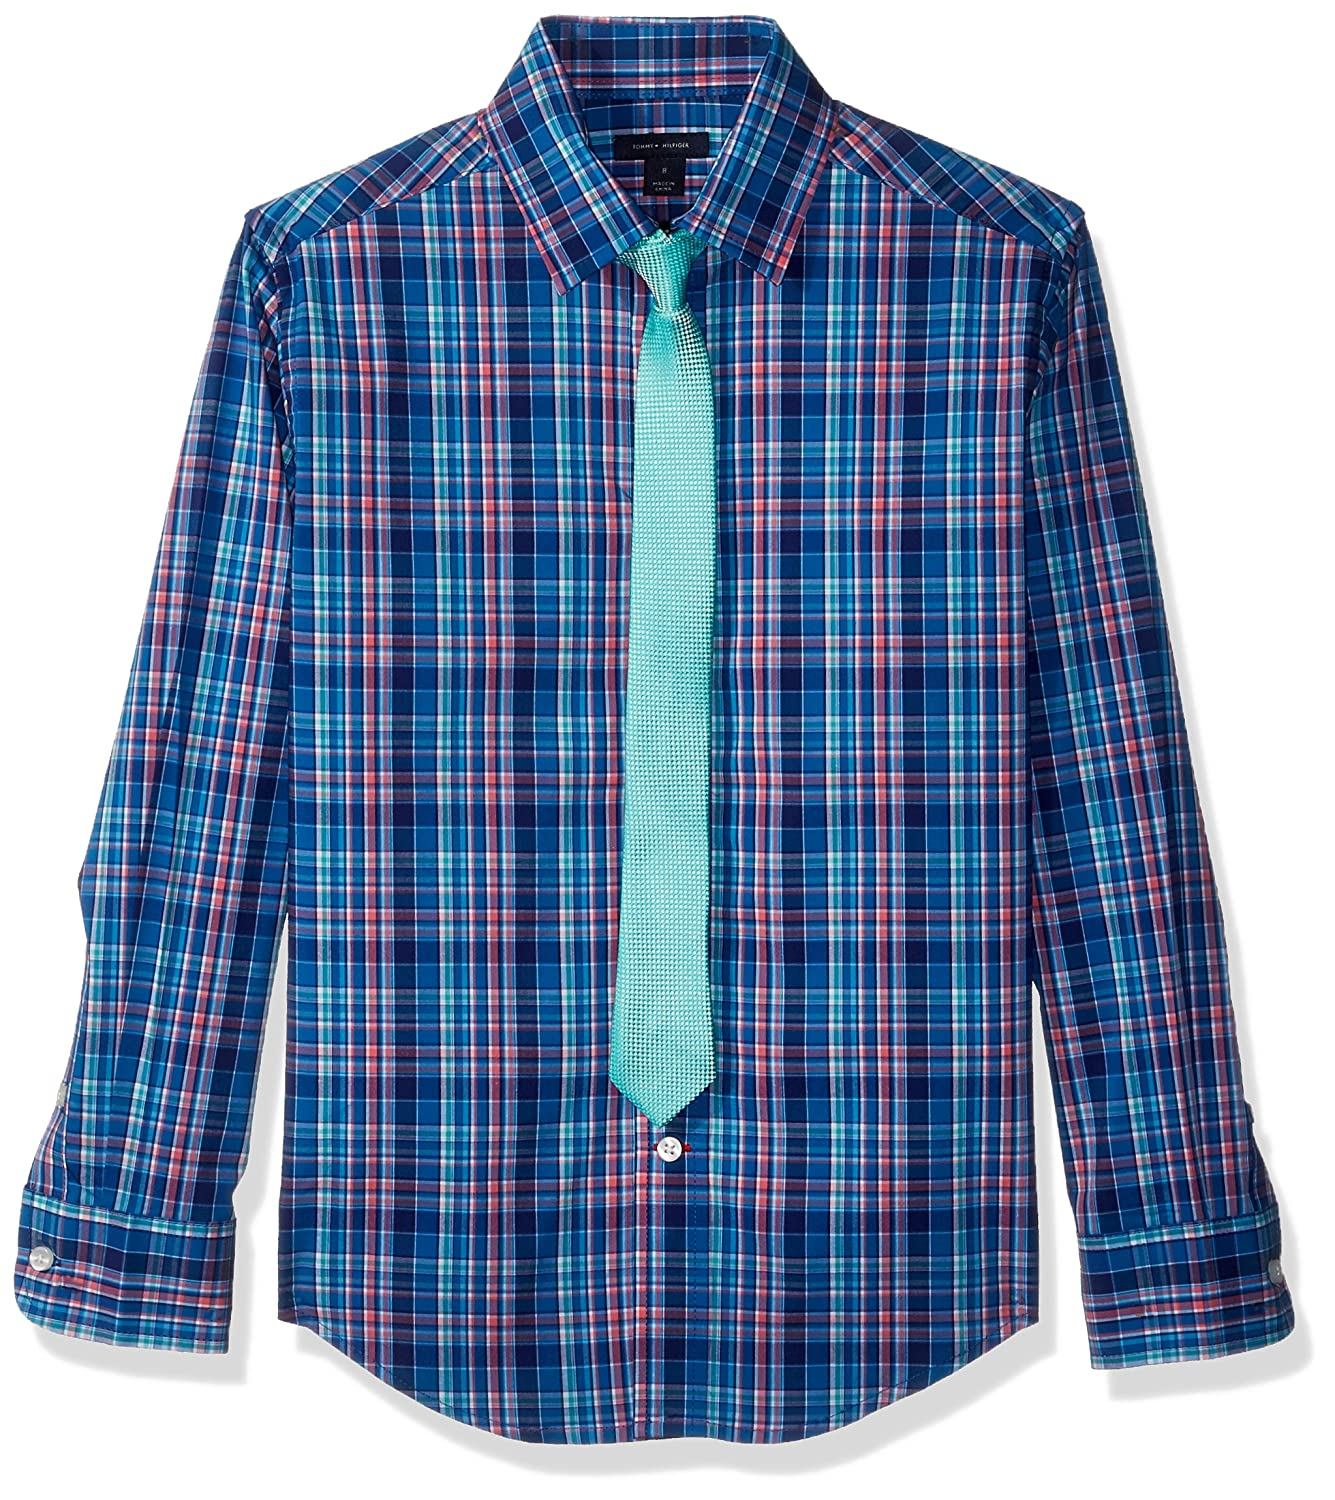 Tommy Hilfiger Boys Long Sleeve Dress Shirt with Tie